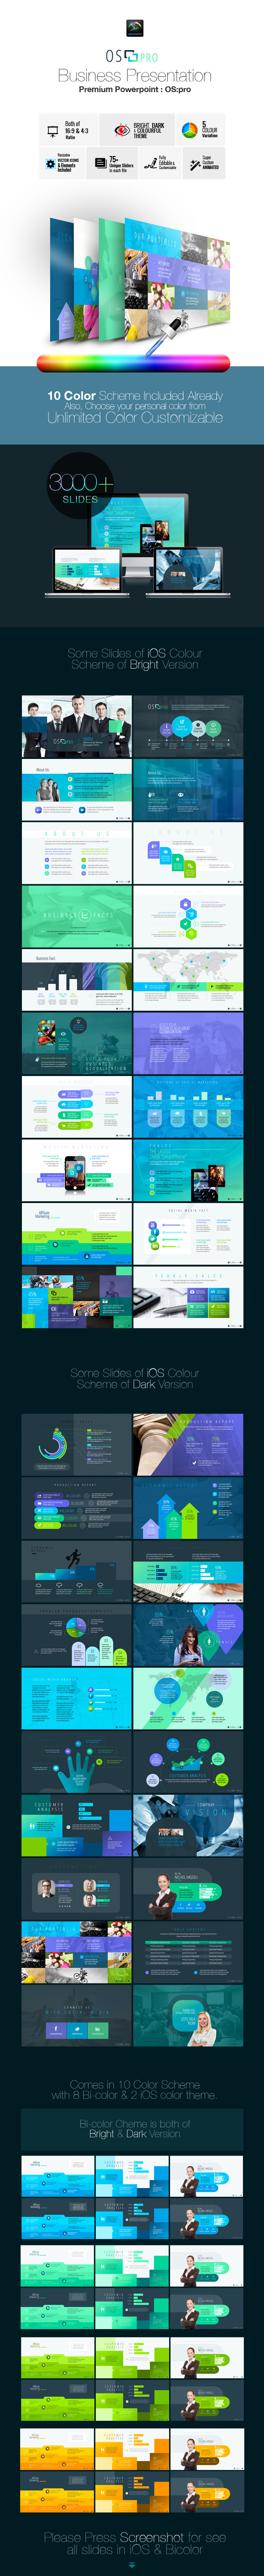 Graphicriver-Corporate-Clean-Business-Powerpoint-Presentation-Templates-Multipurpose-Design_IP_590px